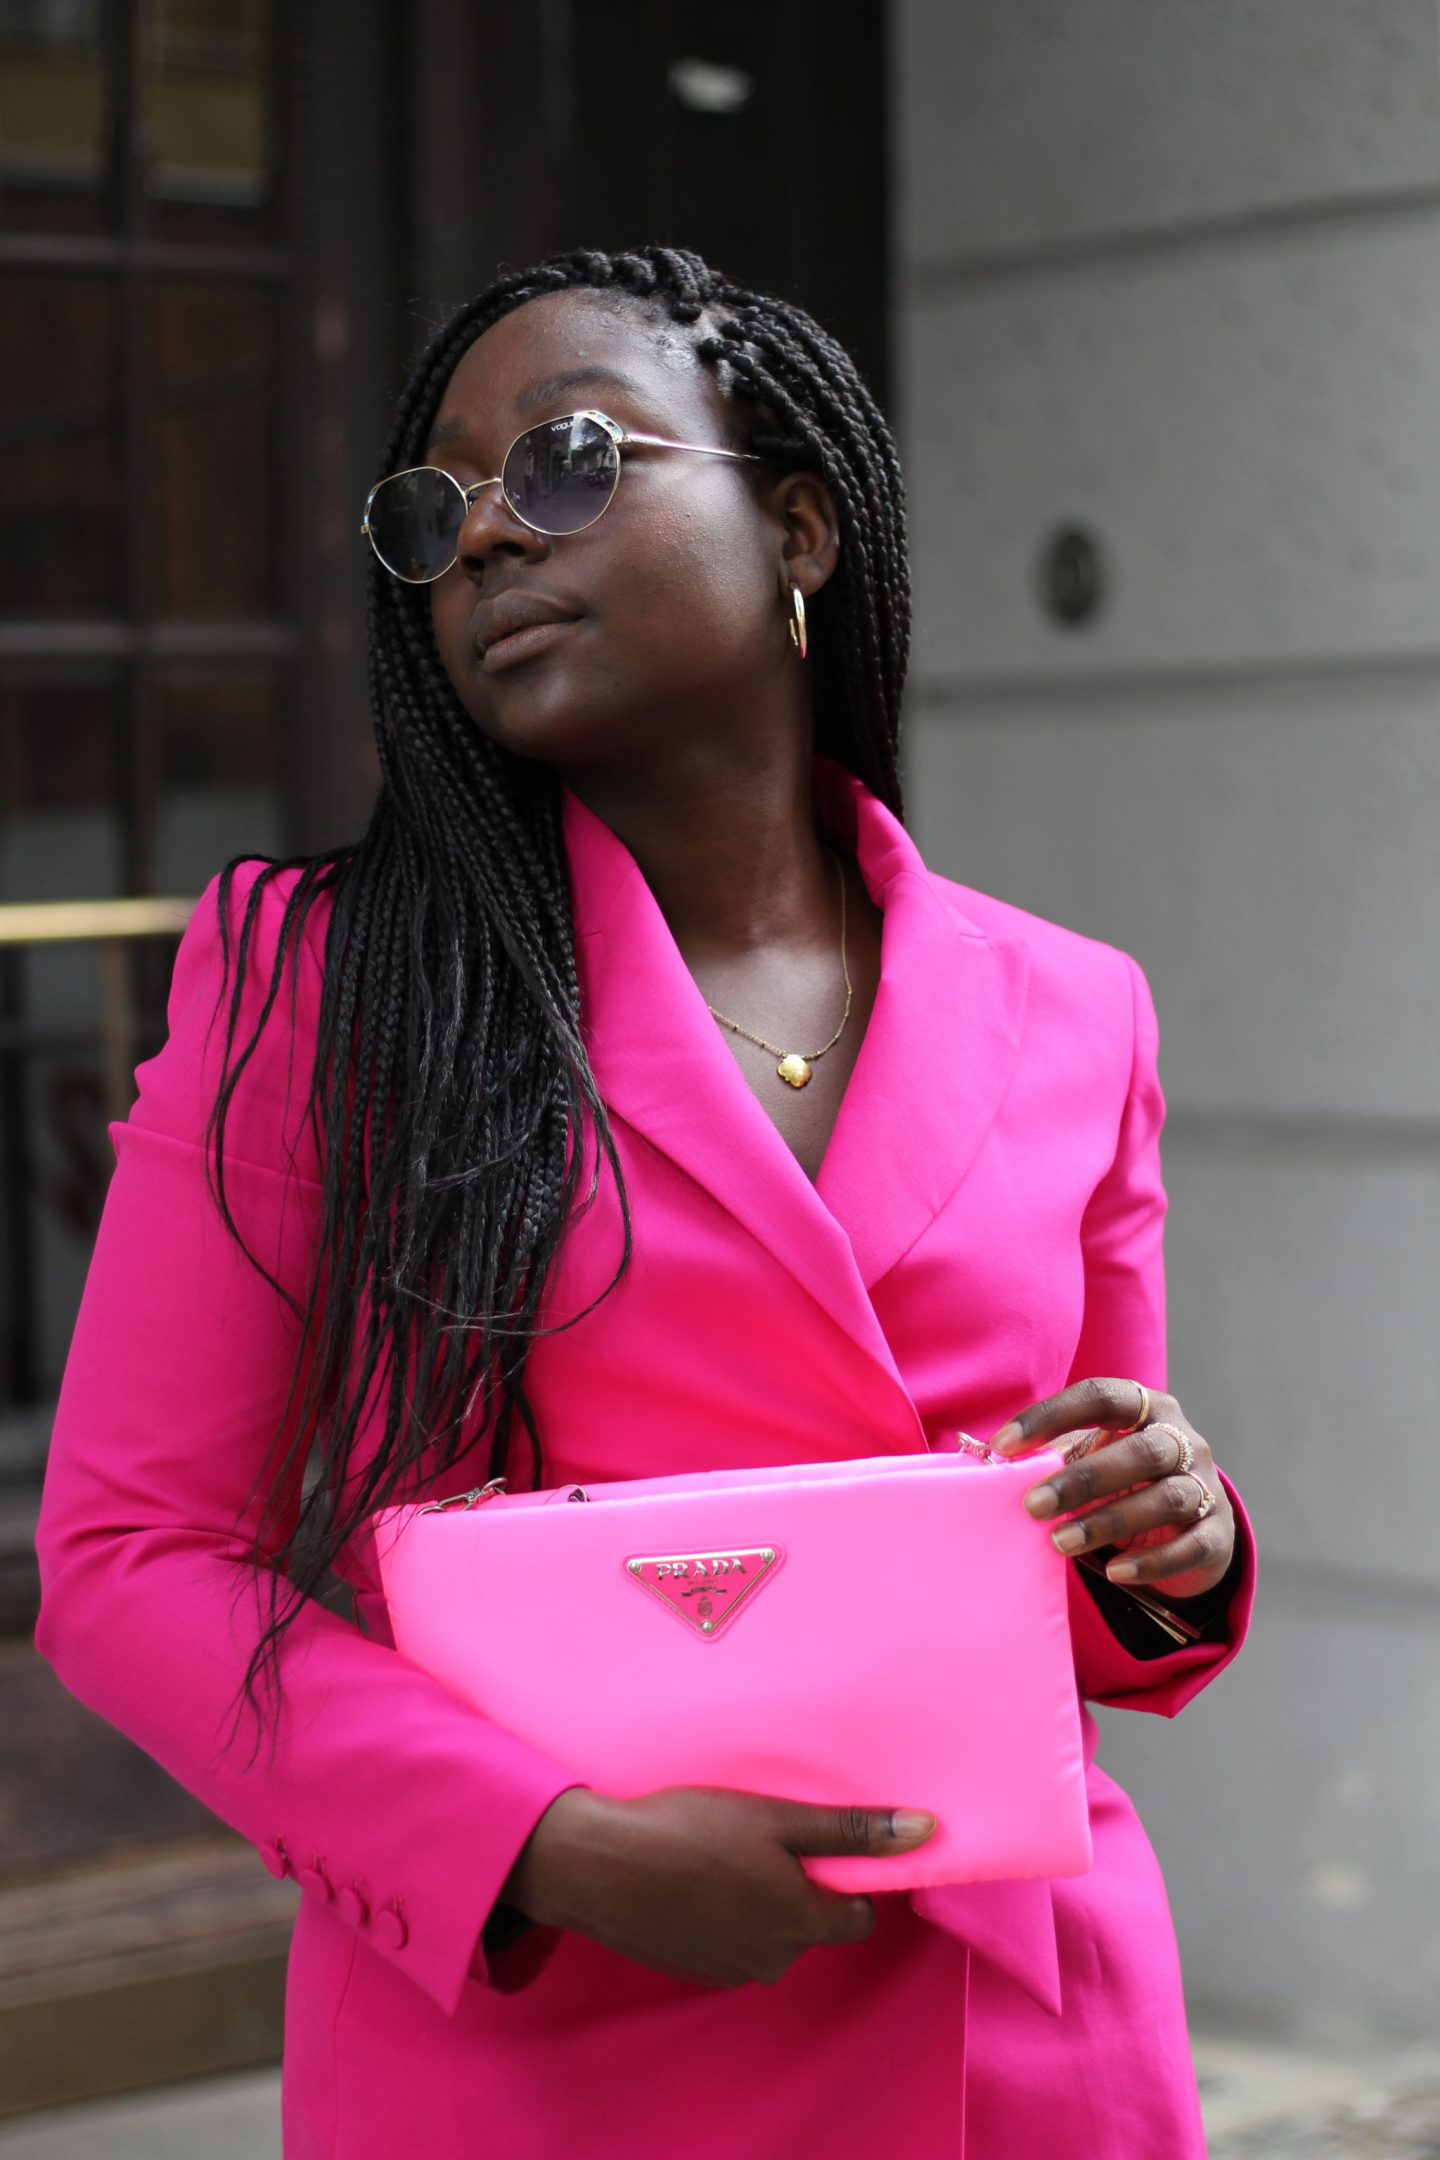 Prada_nylon_bag_Lois_Opoku_fashion_blog_berlin_streetstyle_lisforlois_11